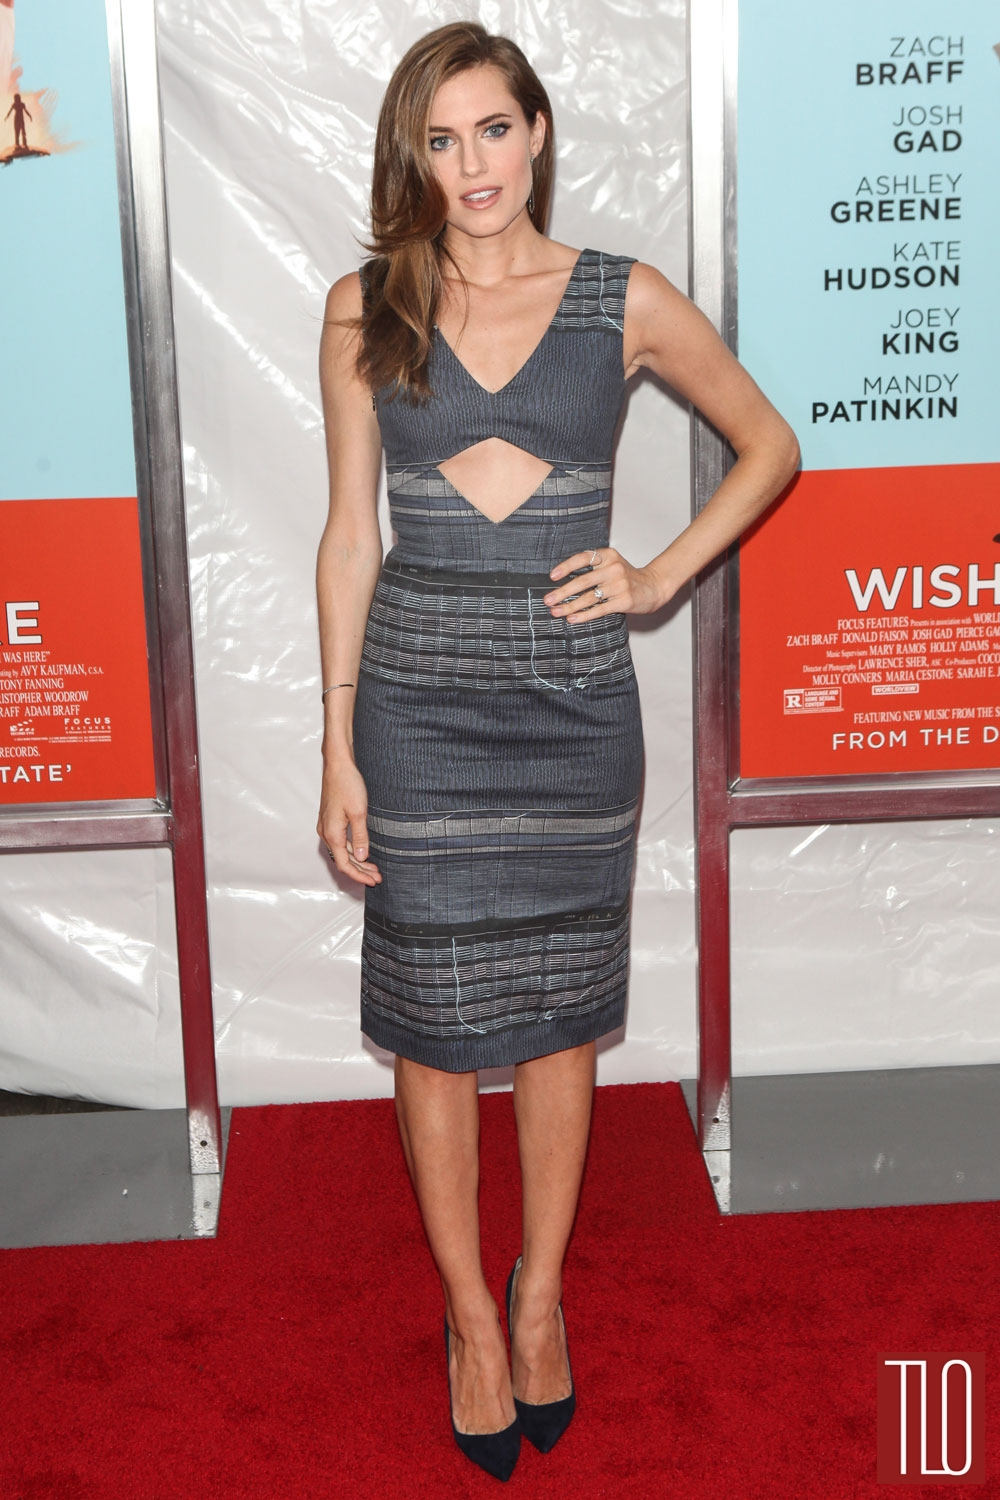 Allison-Williams-Altuzarra-Wish-I-Was-Here-New-York-Screening-Movie-Red-Carpet-Tom-Lorenzo-Site-TLO (1)